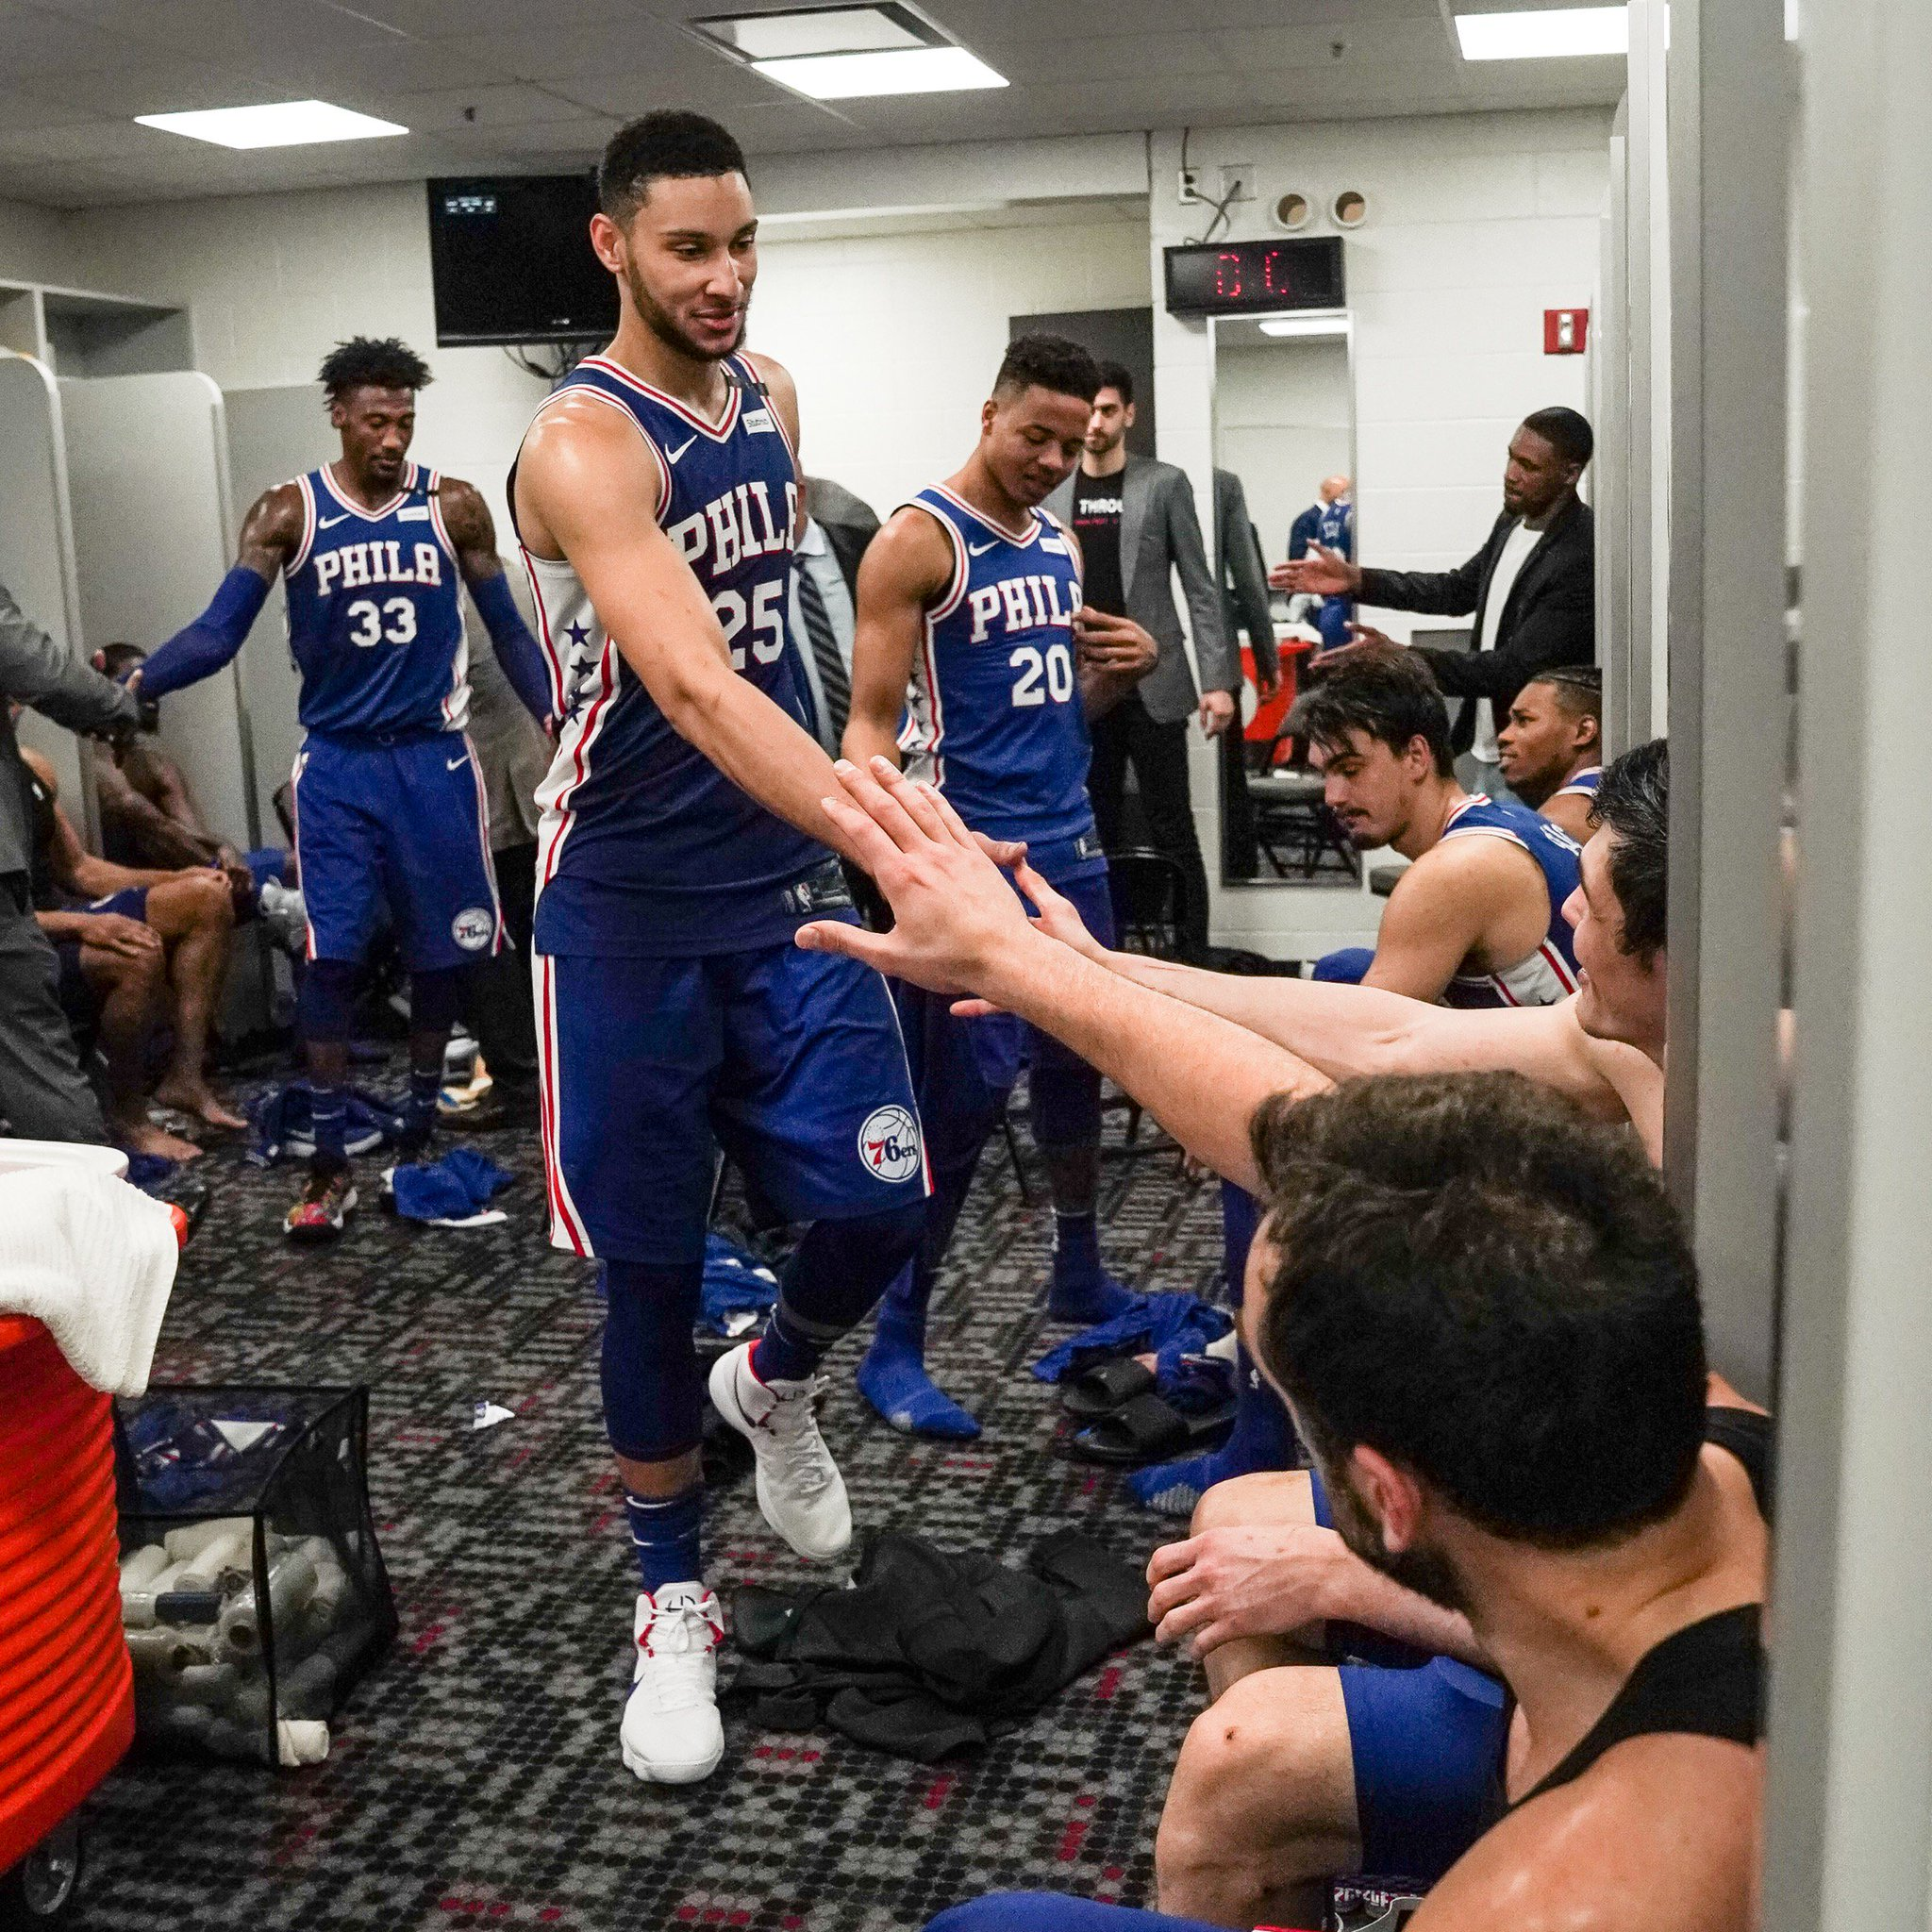 Together on three...  1... 2... 3...  �� https://t.co/hmbBOrrxOP  | #HereTheyCome https://t.co/S8xJ3vdIyy